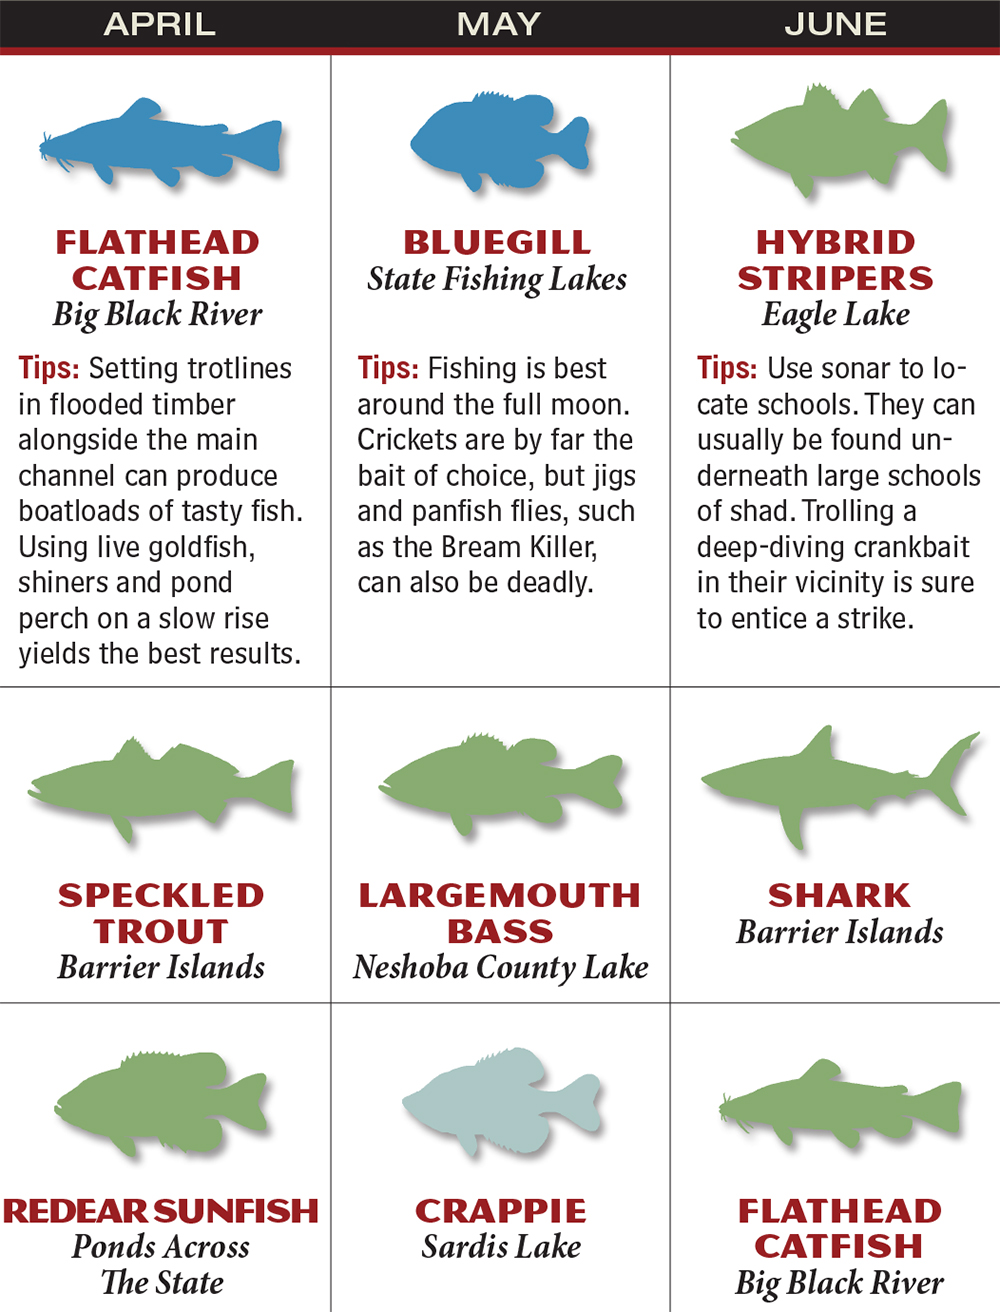 Mississippi 2016 Fishing Calendar